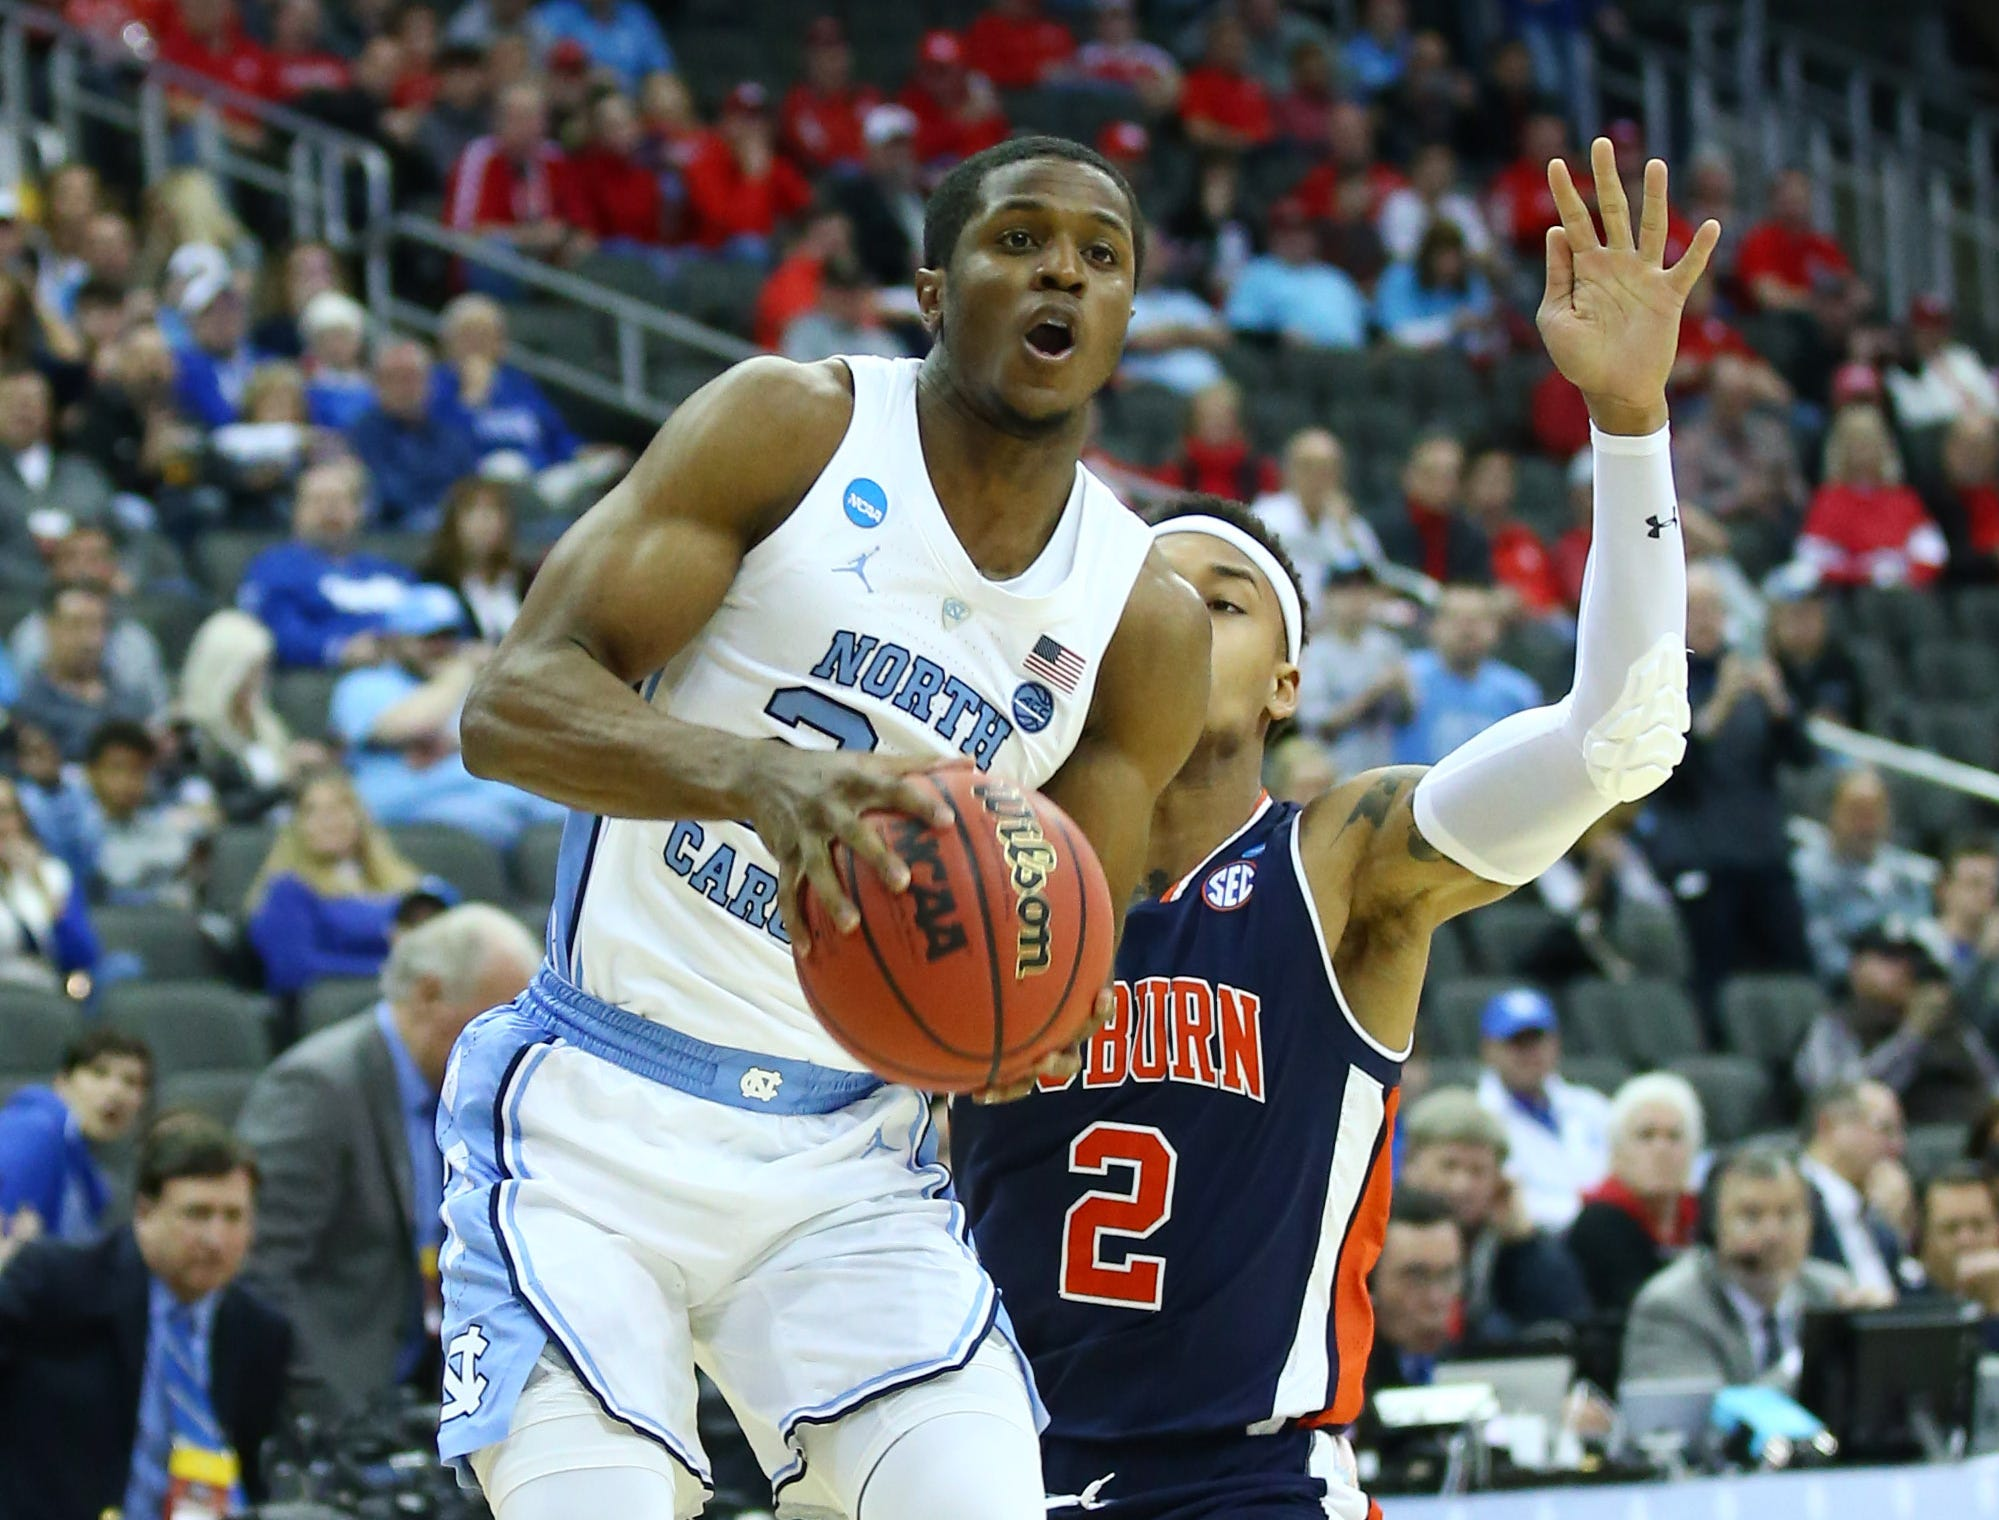 Mar 29, 2019; Kansas City, MO, United States; Auburn Tigers guard Bryce Brown (2) knocks the ball away from North Carolina Tar Heels guard Kenny Williams (24) during the first half in the semifinals of the midwest regional of the 2019 NCAA Tournament at Sprint Center. Mandatory Credit: Jay Biggerstaff-USA TODAY Sports